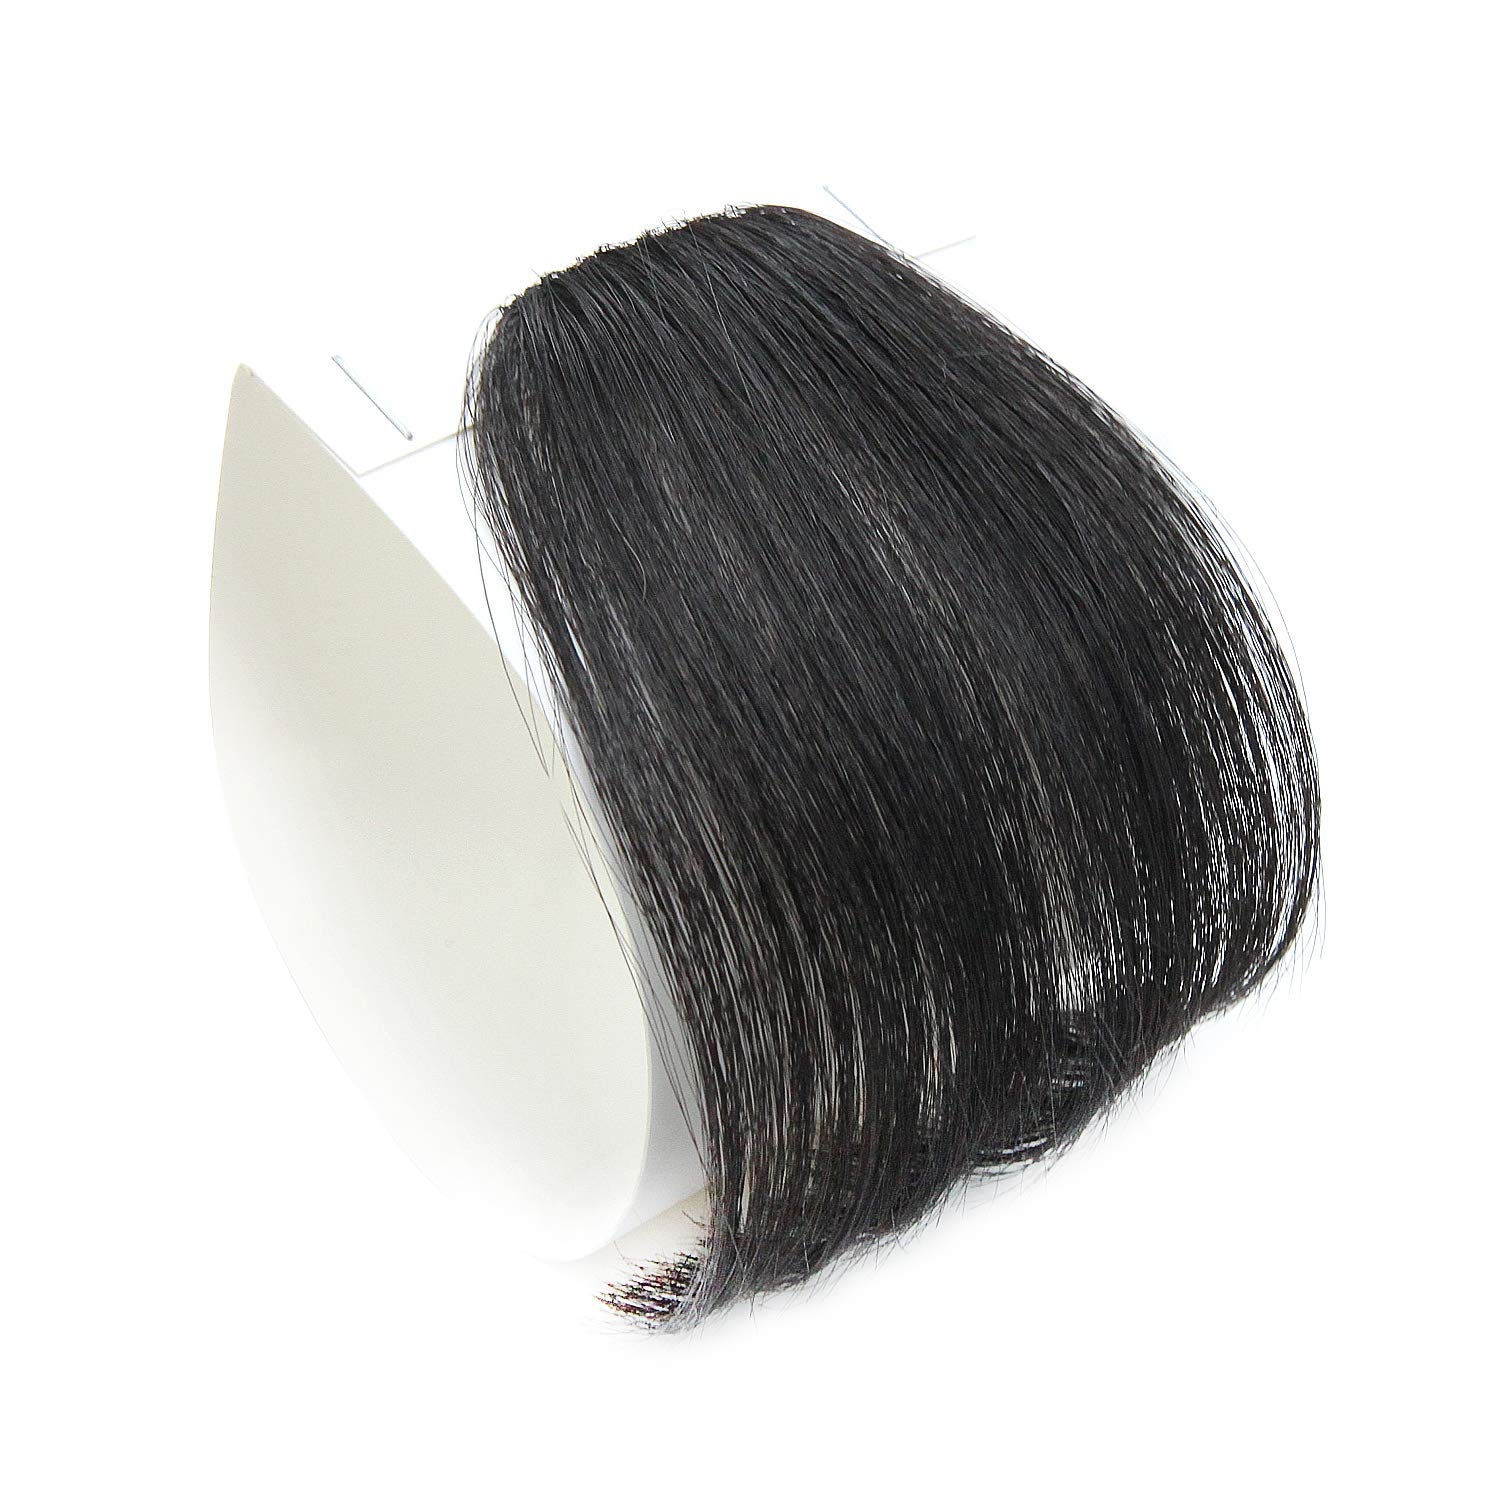 PARAHAIR Clip in Bangs Synthetic Hair Extensions One Piece in Fringe Natural Flat Air Bangs for Women (No Temples, Jet Black)